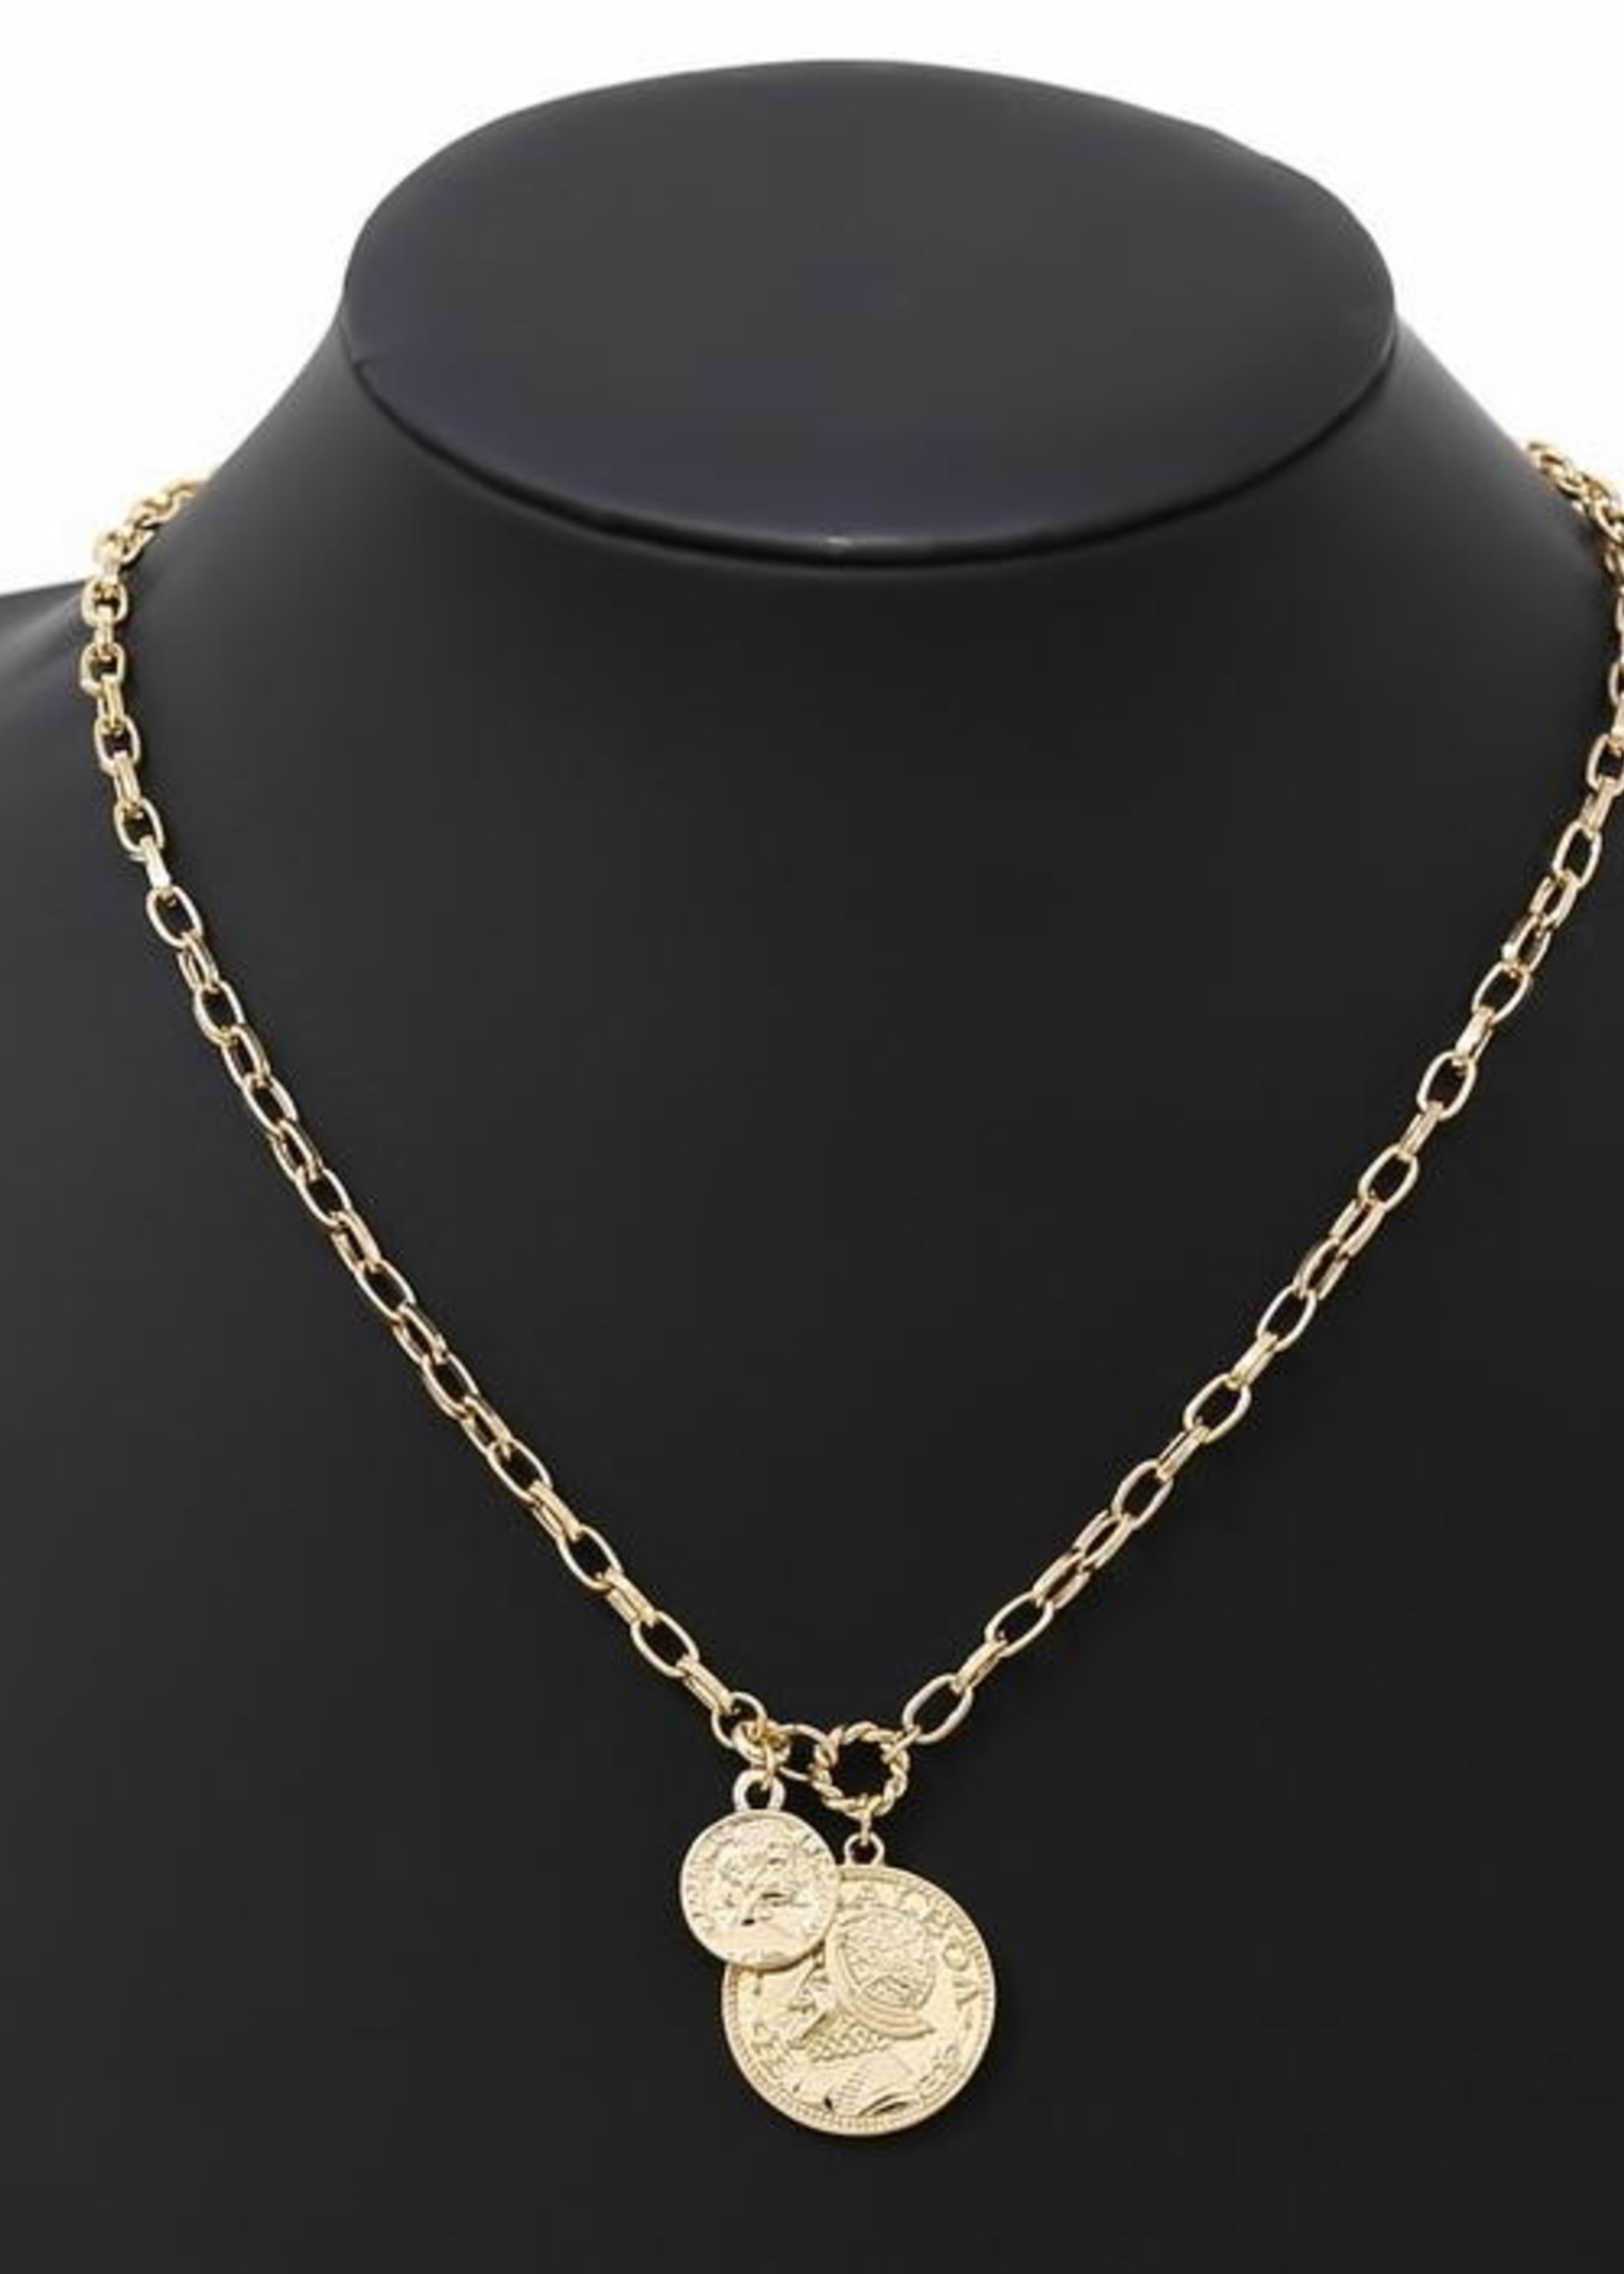 Coin Pendent Necklace